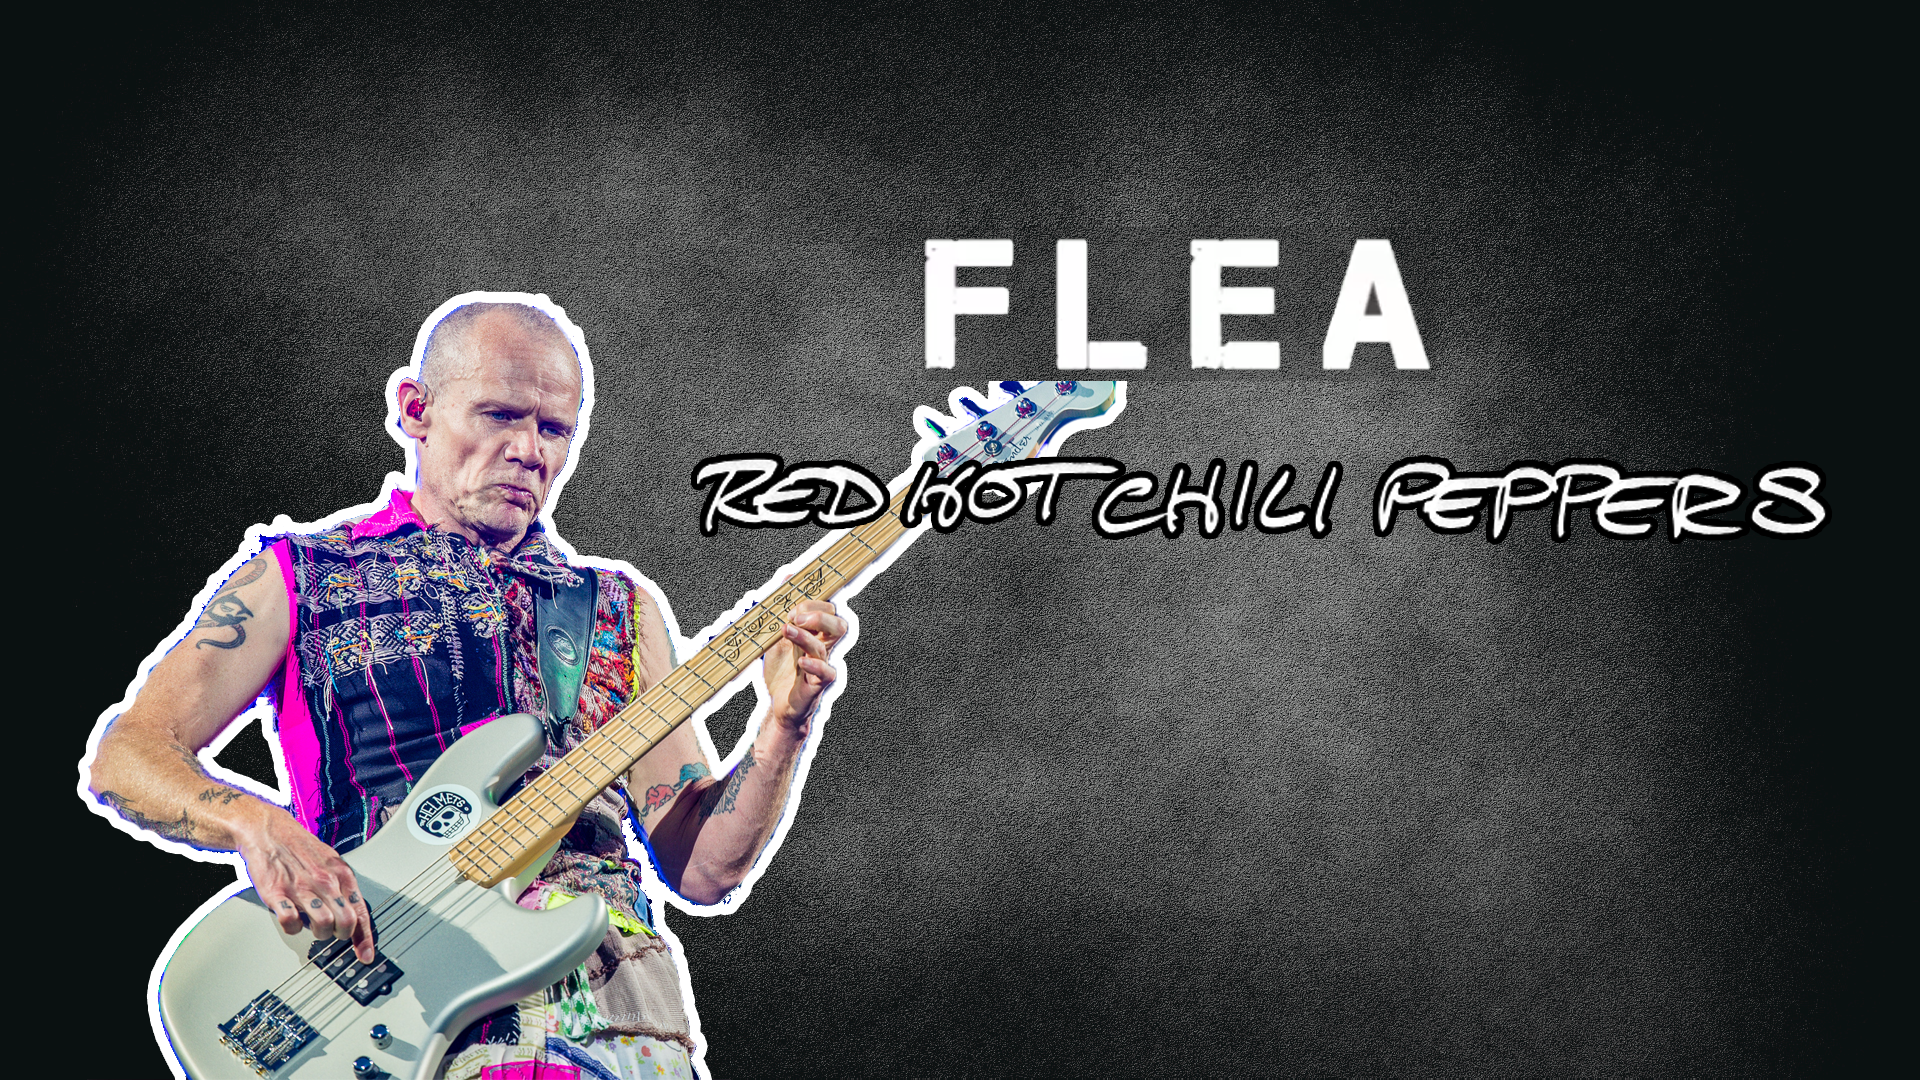 Flea's Bass Amplifier rig